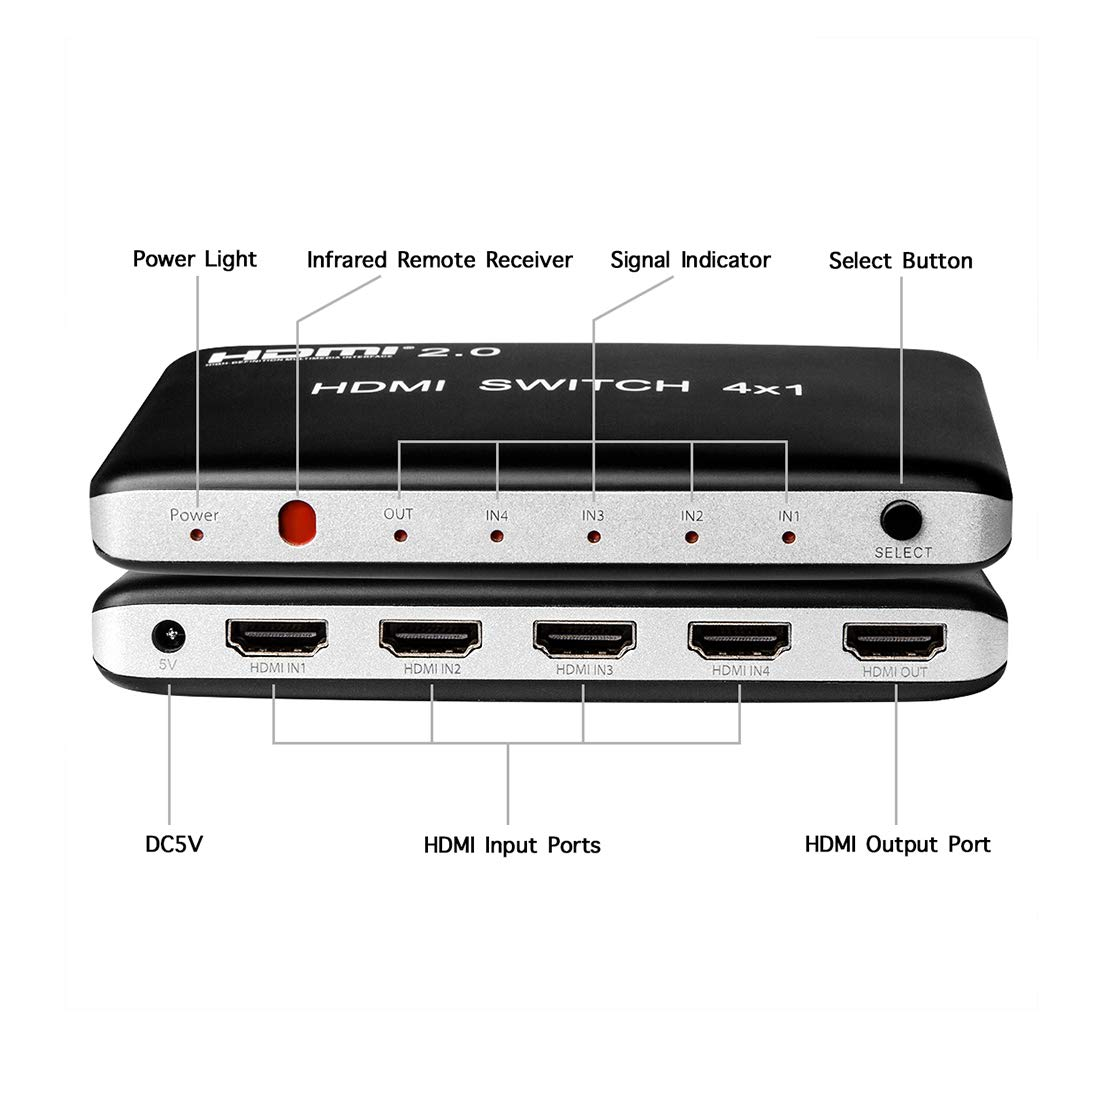 KEEGH HDMI Switcher 7 Ports 7X1 HDMI Switch 4K 60HZ 2.0 Switch Splitter Box with IR Wireless Remote Support HDCP 2.2 HDR Full HD//3D